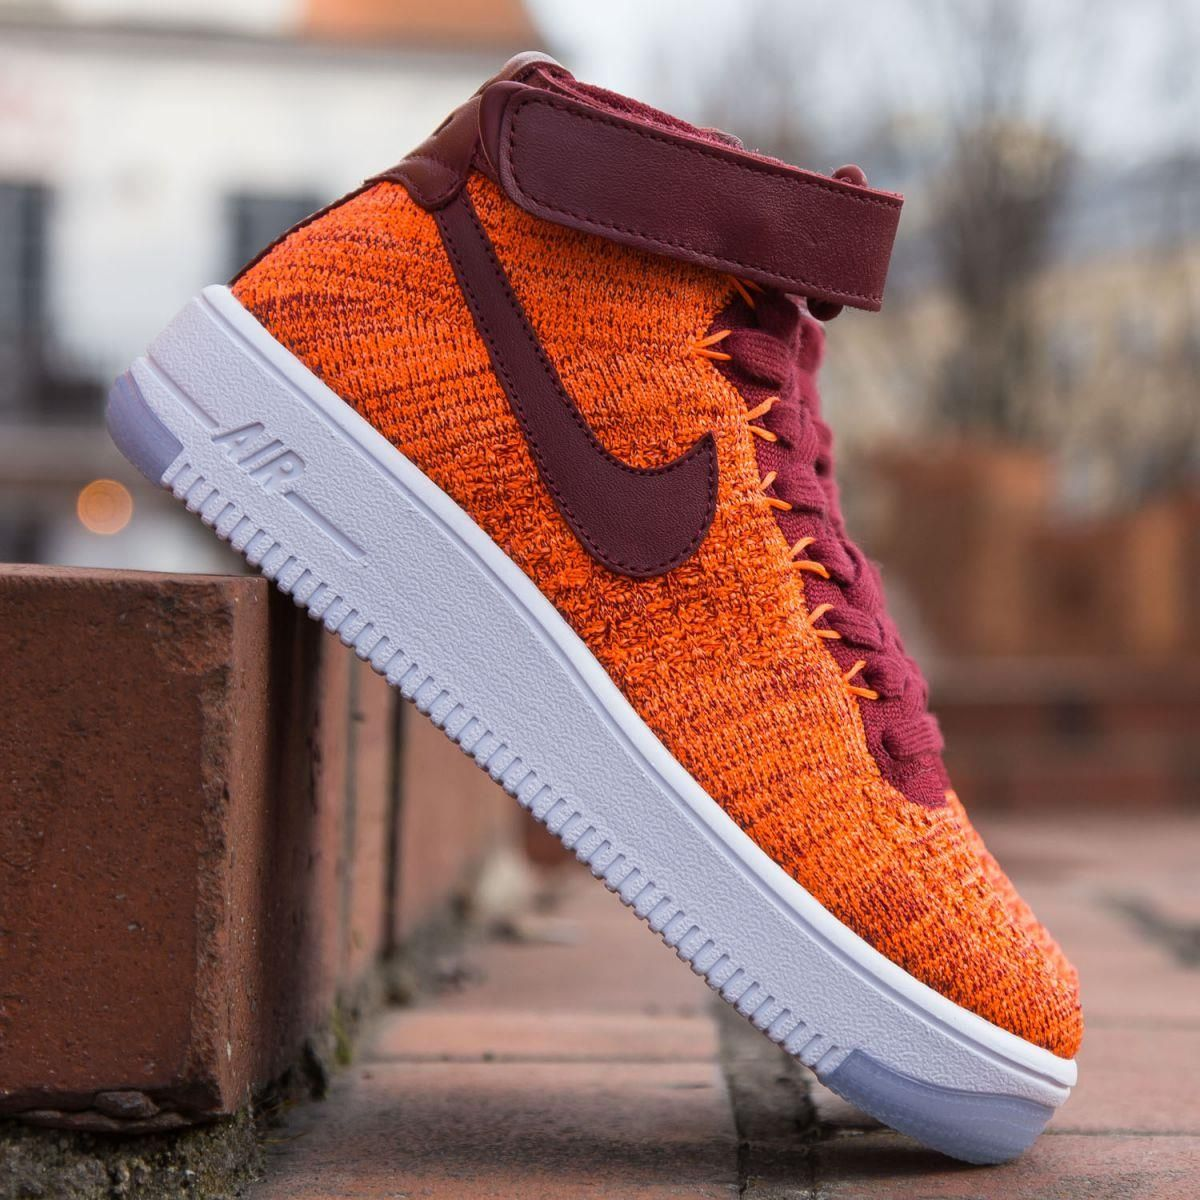 new style cf86f 17788 Nike WMNS AIR FORCE 1 ULTRA FLYKNIT 818018-800 - Ceny i opinie - Ceneo.pl